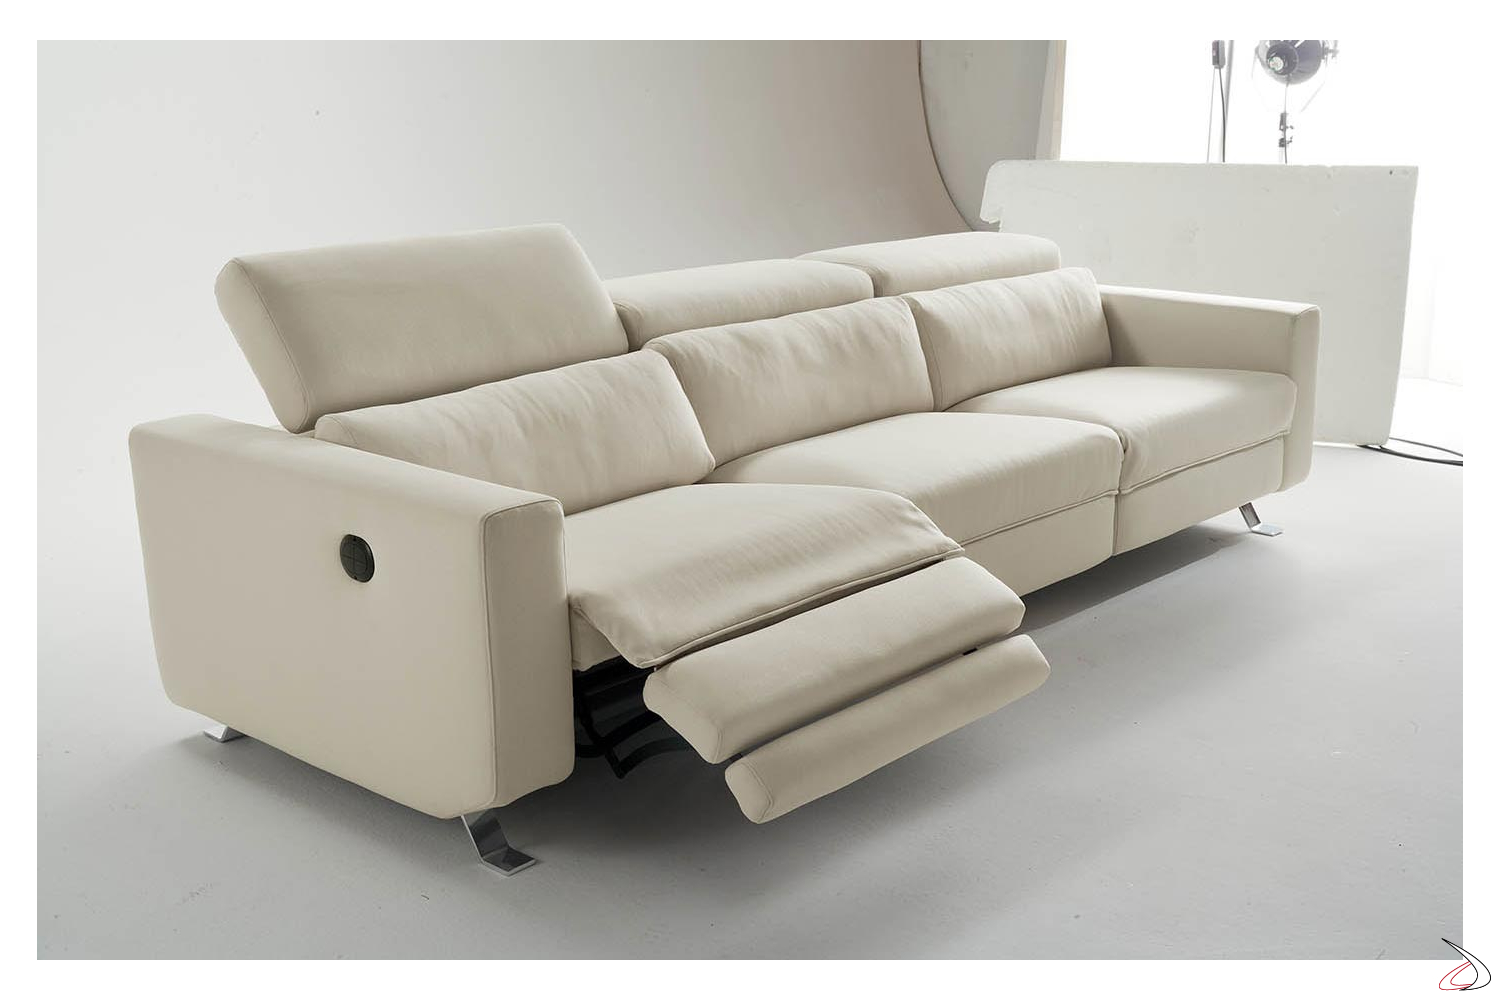 Cirillo Electric Recliner Sofa Toparredi Arredo Design - Divano 3 Posti Recliner